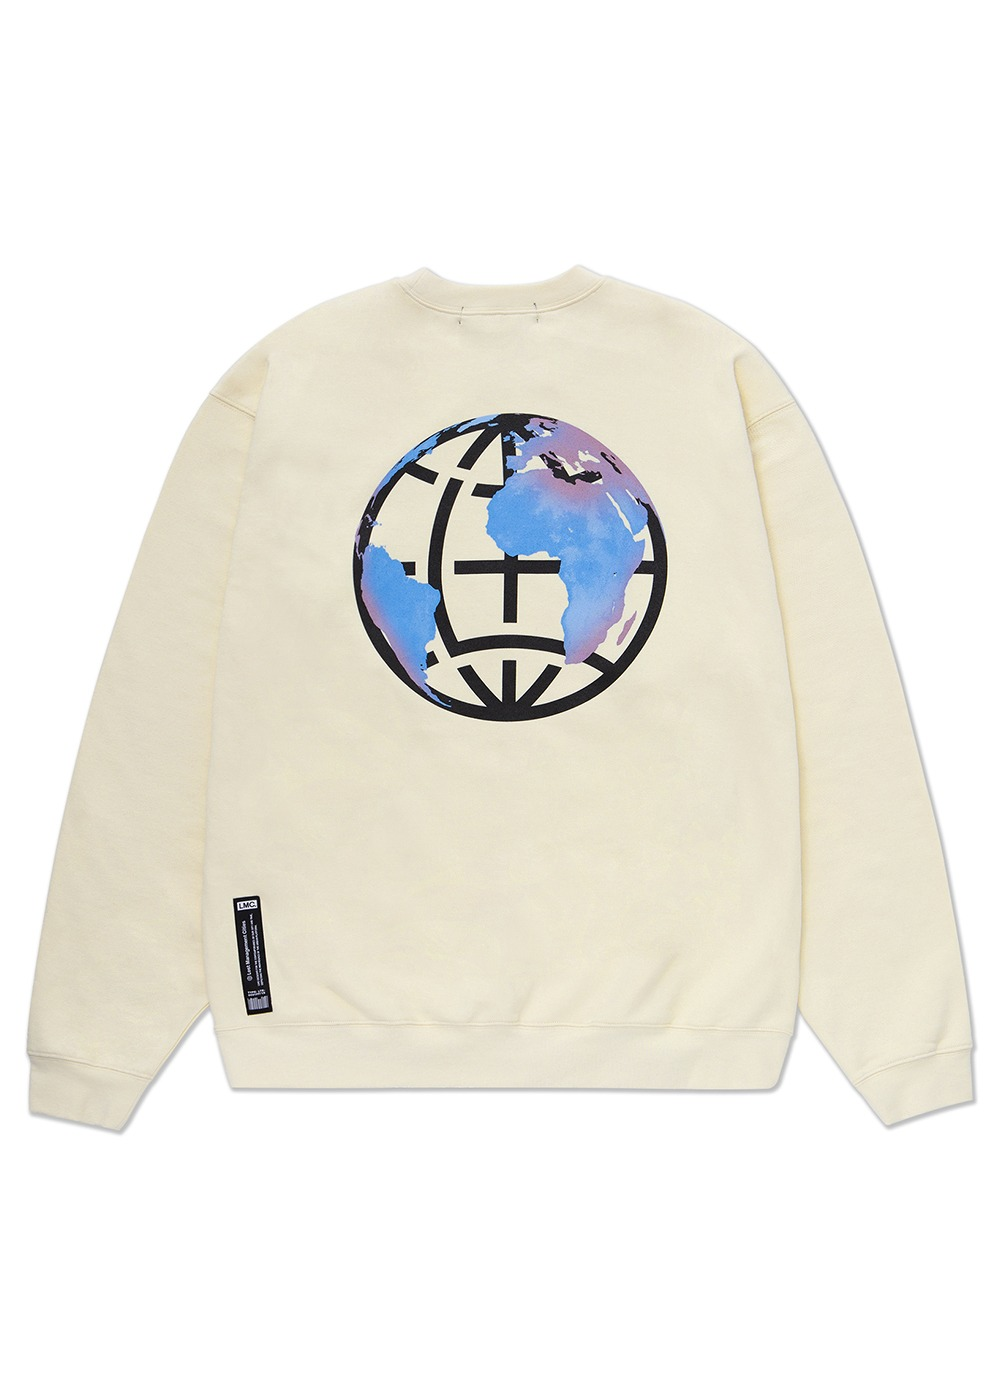 LMC EARTH LOGO SWEATSHIRT cream